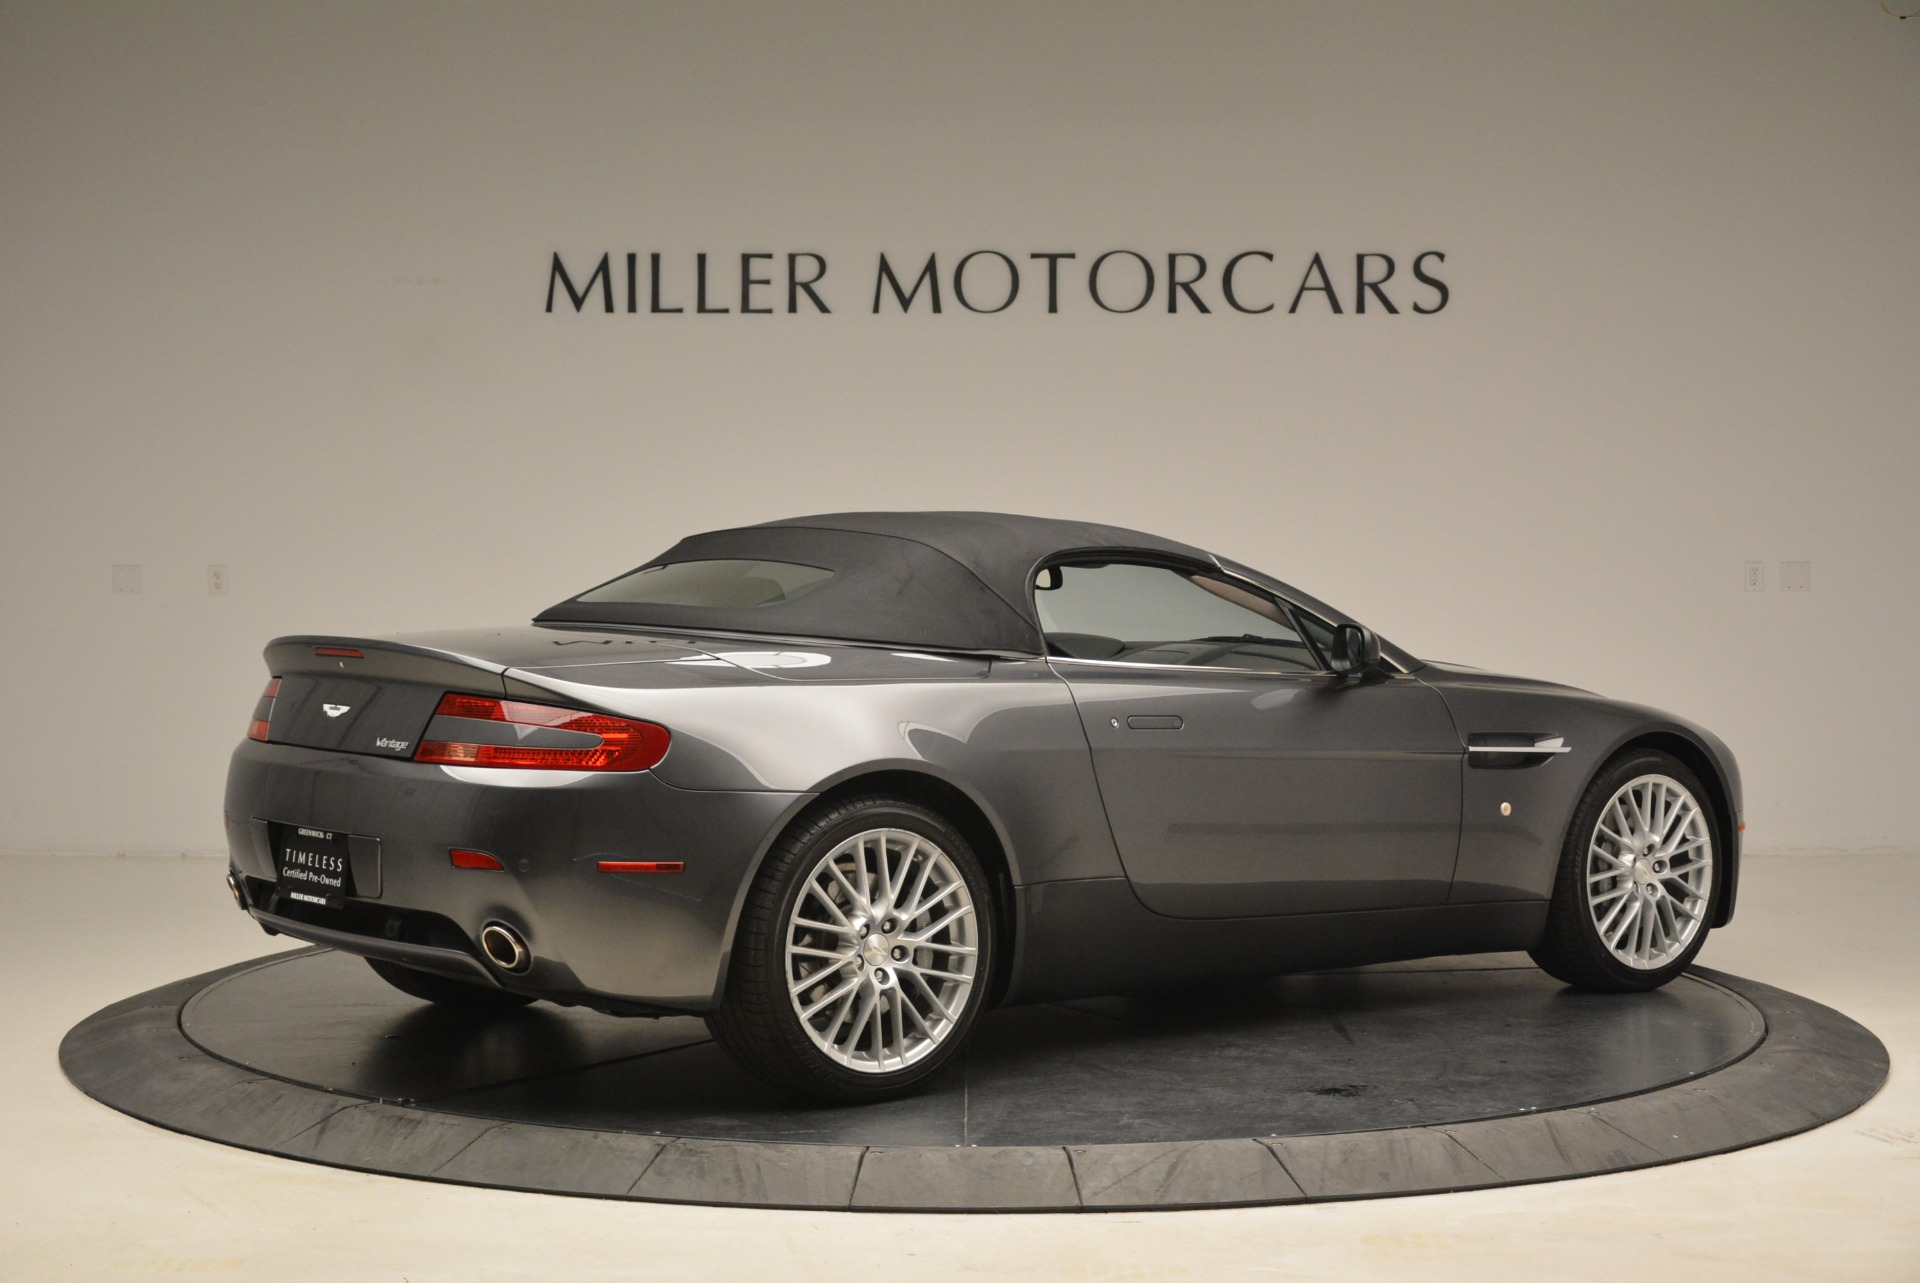 Used 2009 Aston Martin V8 Vantage Roadster For Sale In Greenwich, CT. Alfa Romeo of Greenwich, 7333 2123_p20